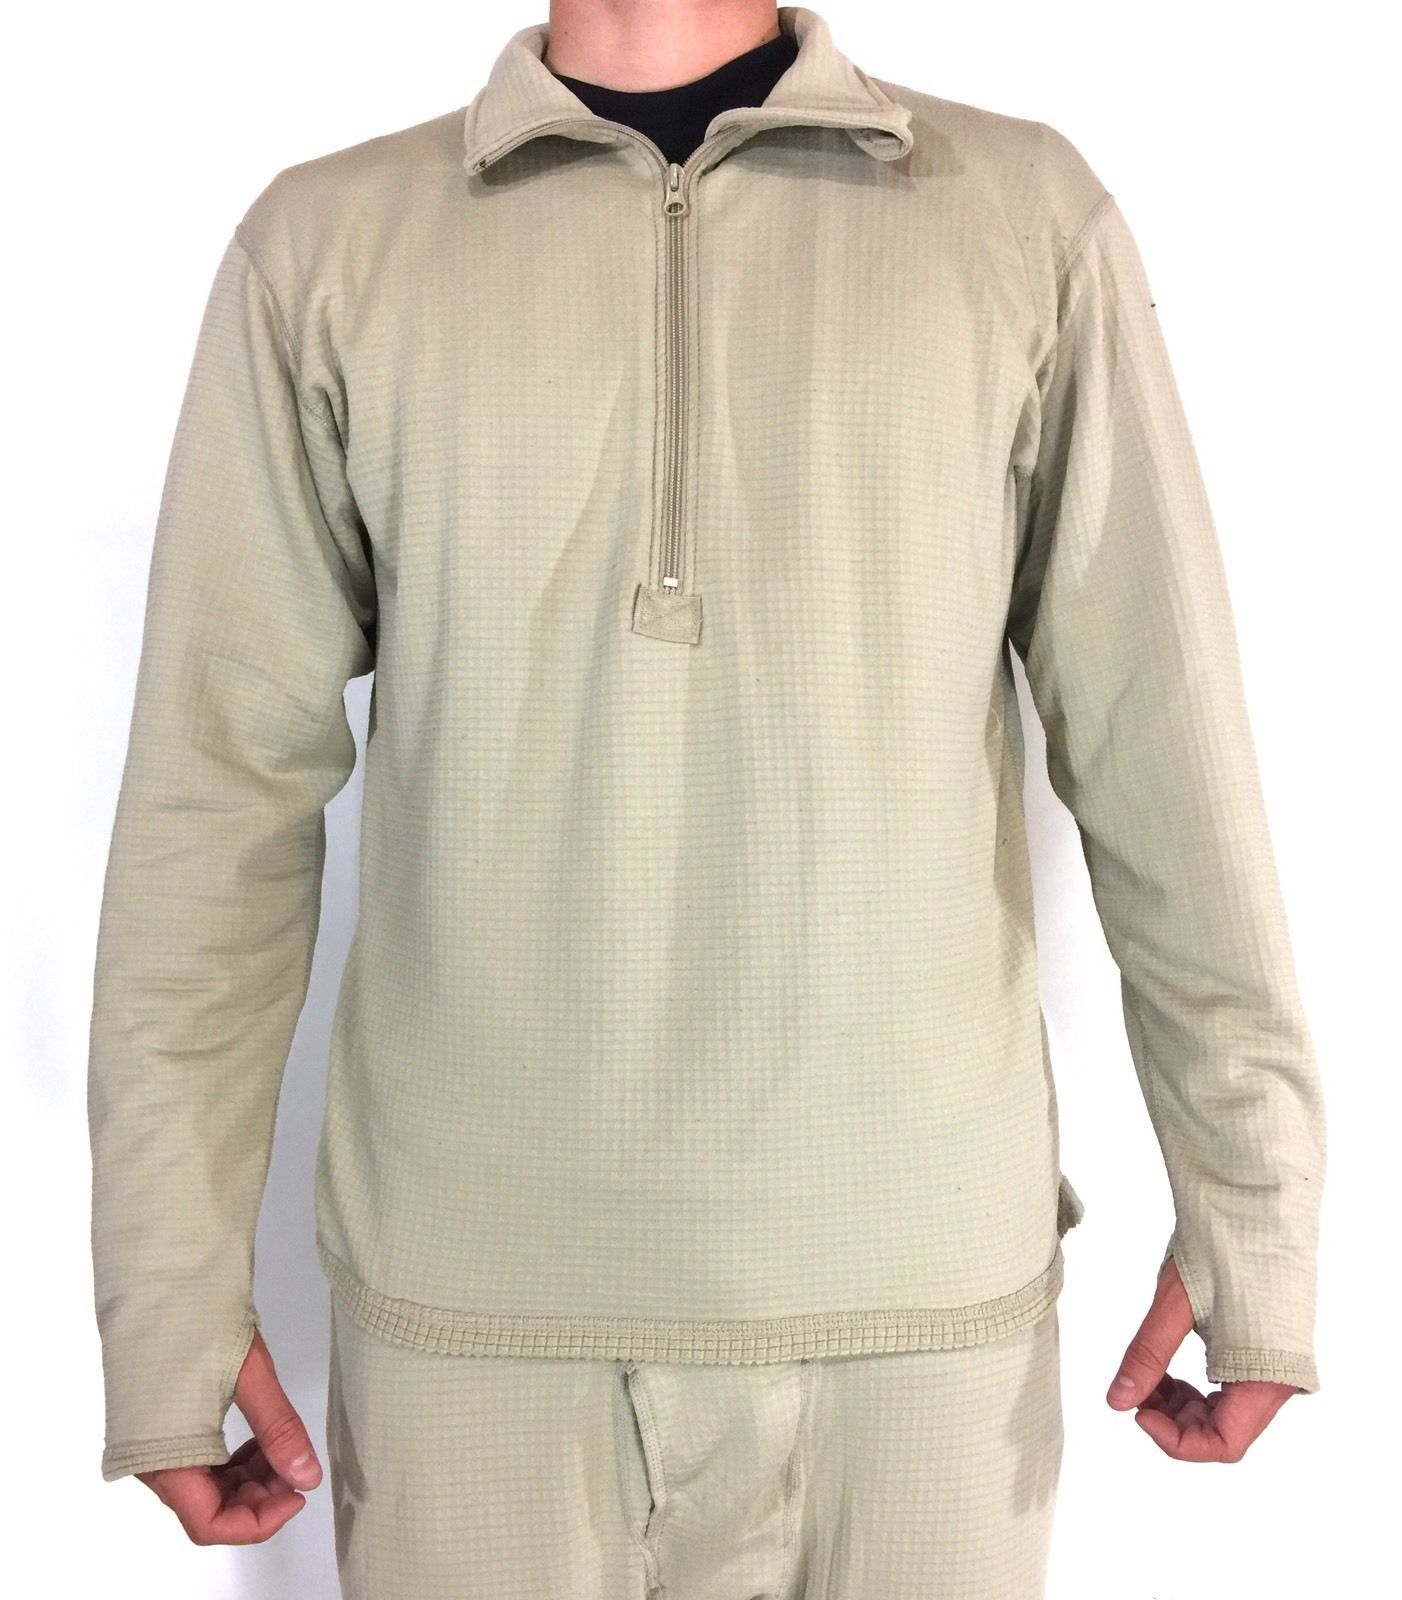 NEW POLARTEC Thermal Military Shirt, ECWCS Mid Weight Fleece Level 2, Waffle Top